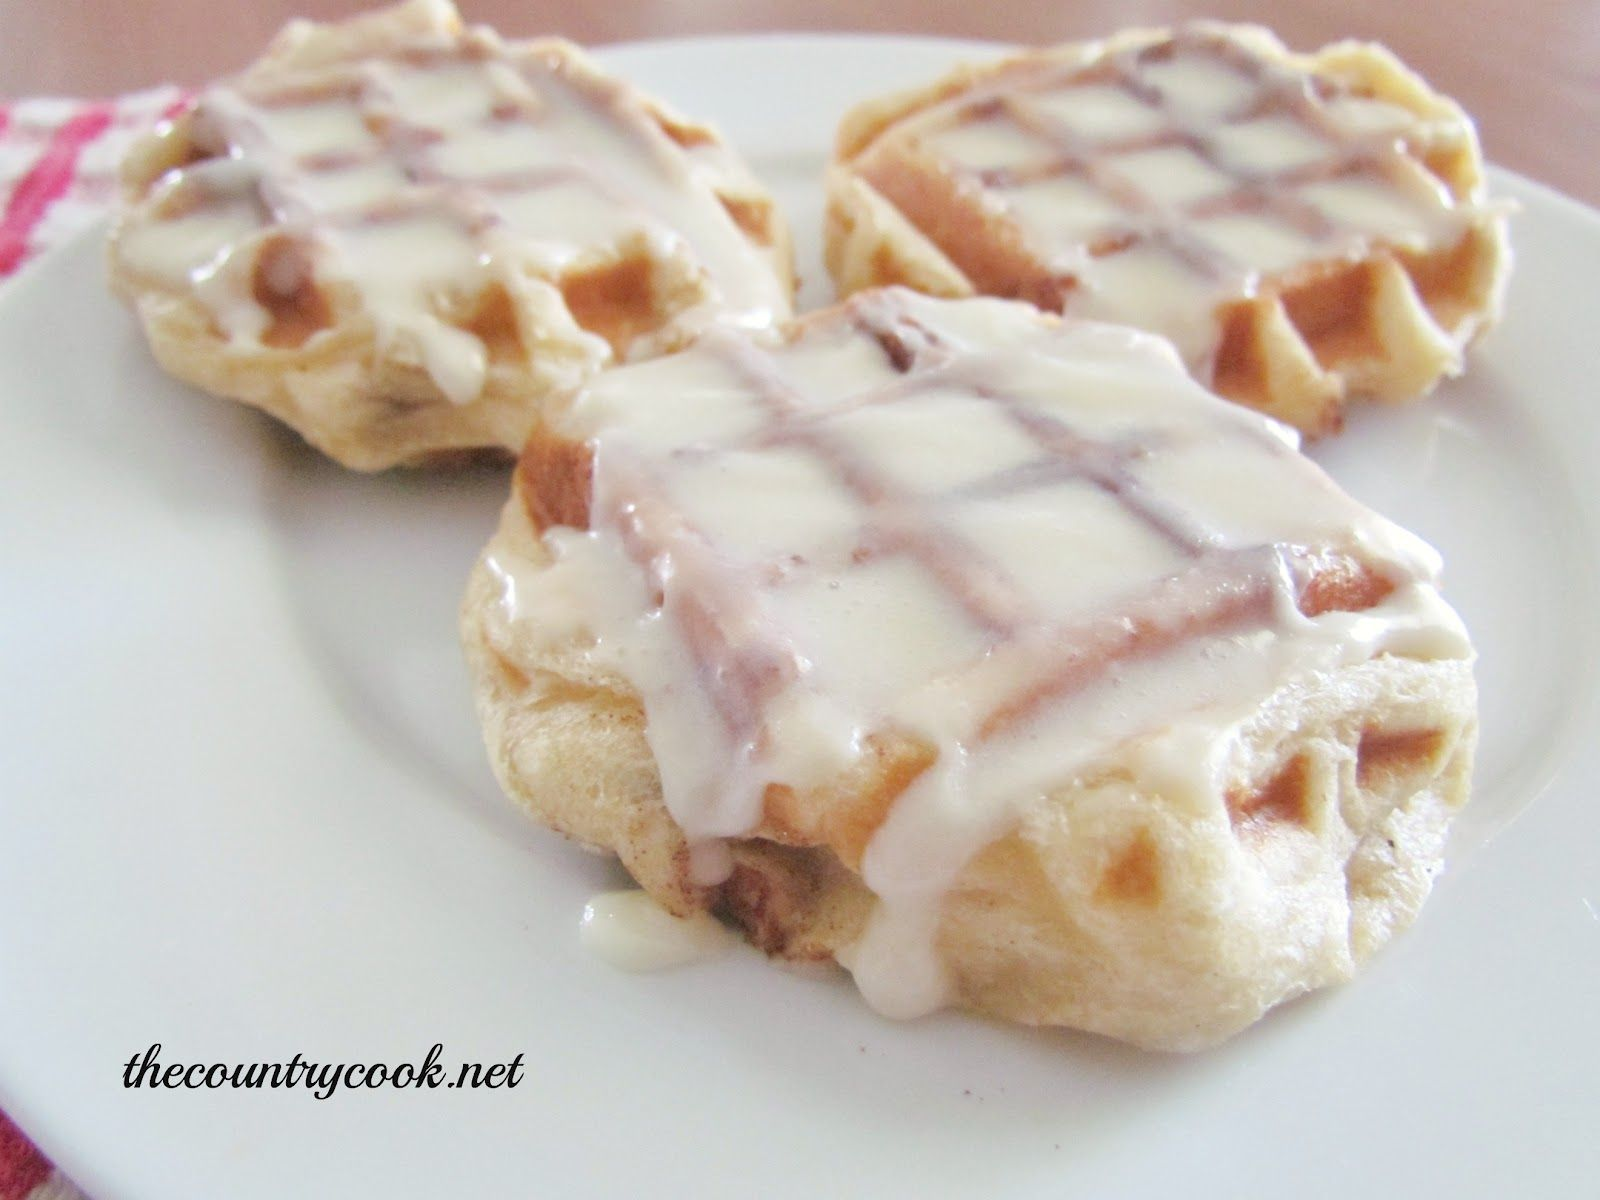 Mini Cinnamon Roll Waffles (packaged cinnamon rolls (like pilsbury) put on the waffle iron and cooked.  they say crispy outside and soft inside